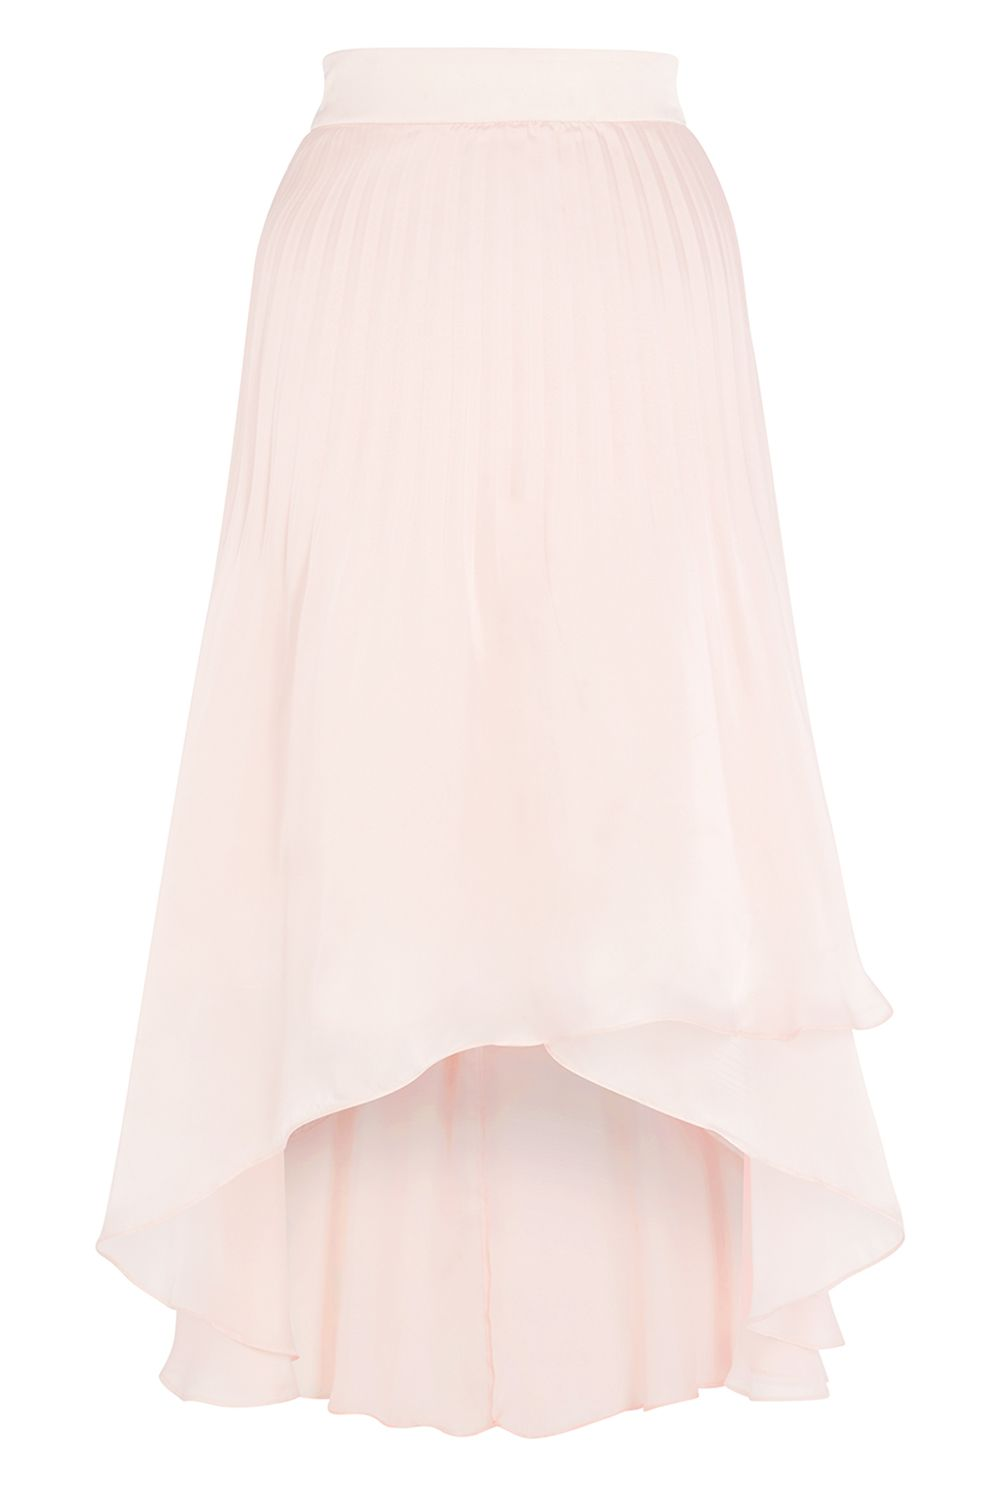 Coast Amy Skirt, Pink